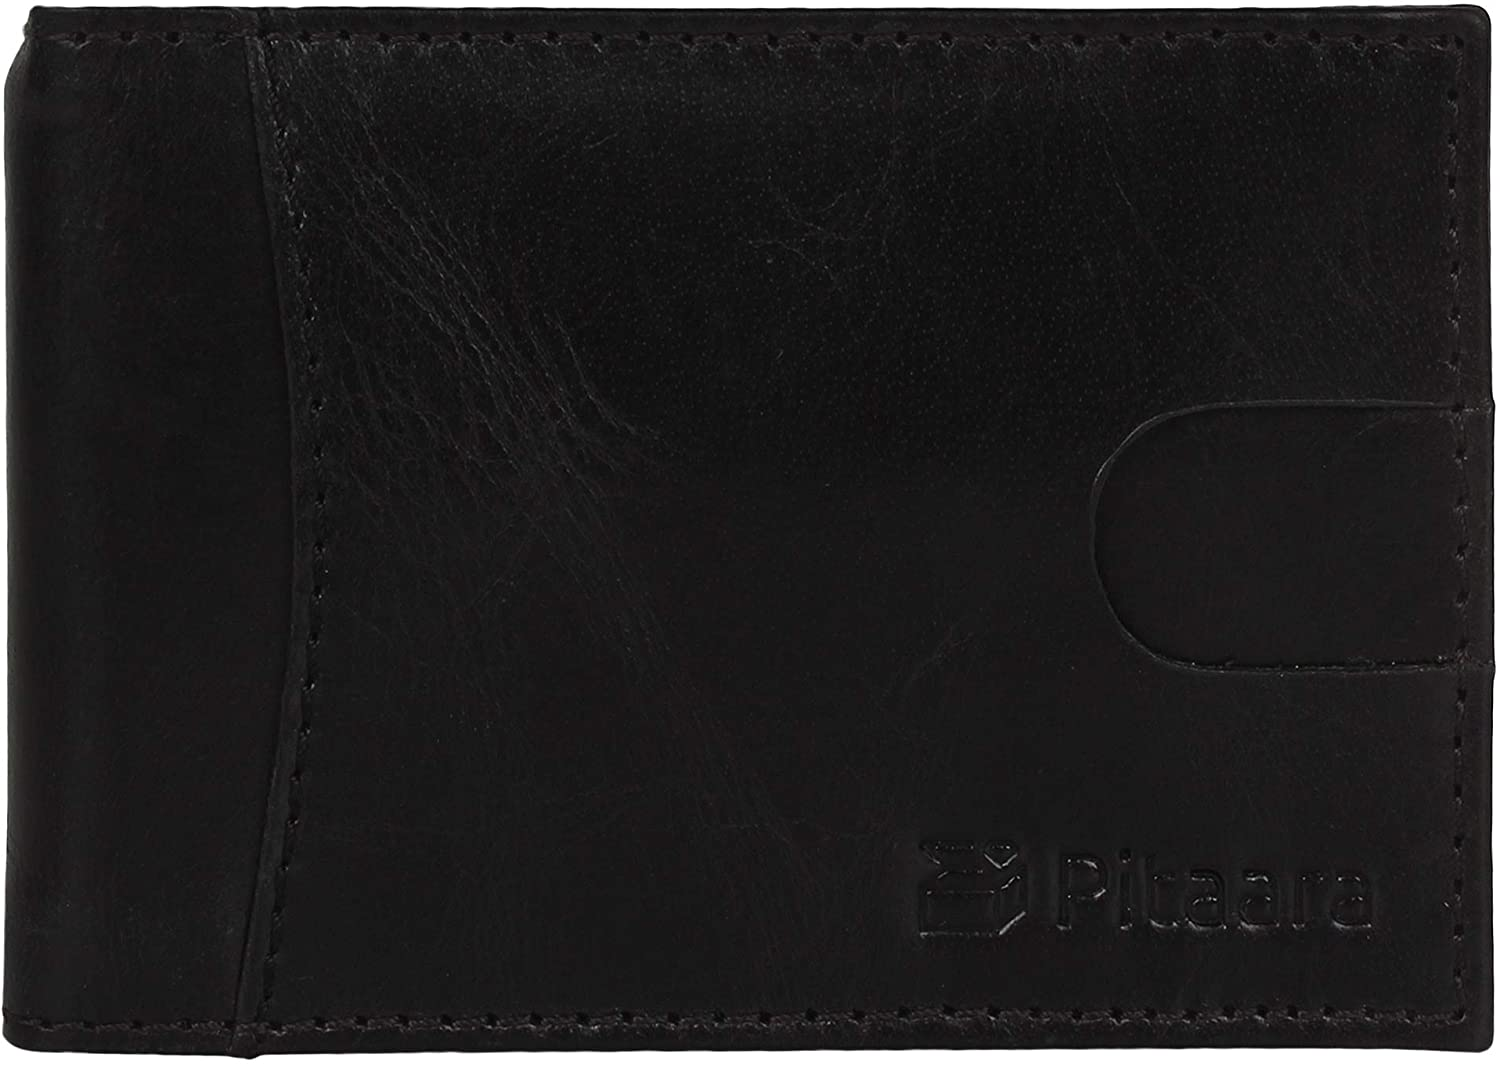 Genuine Leather Slim Hand Crafted Minimalist Front Pocket Bifold Wallet with RFID Blocking and Money Clip For Men